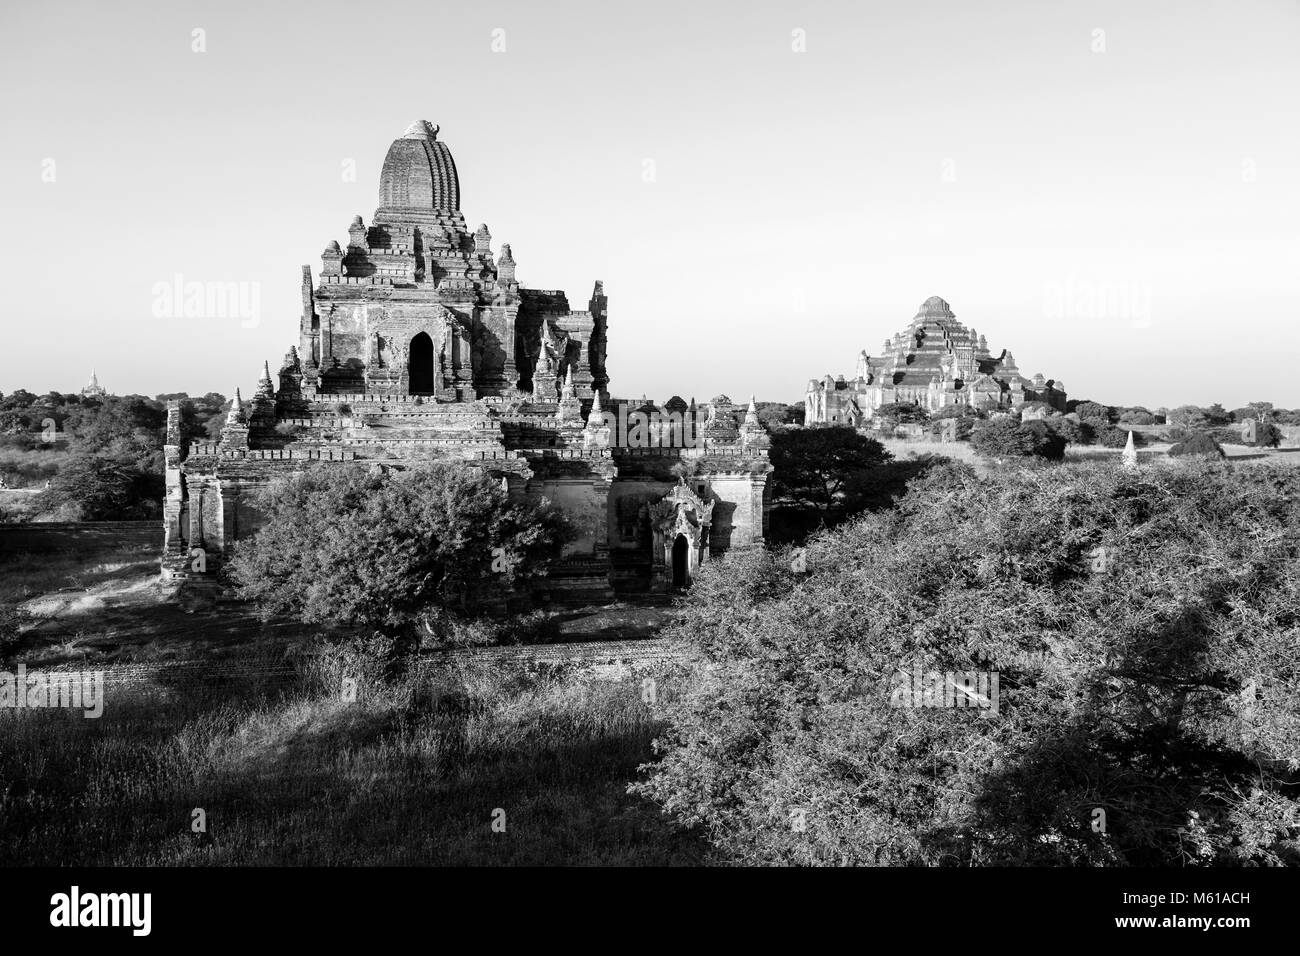 Two ancient Pagodas in Bagan, Myanmar - Stock Image